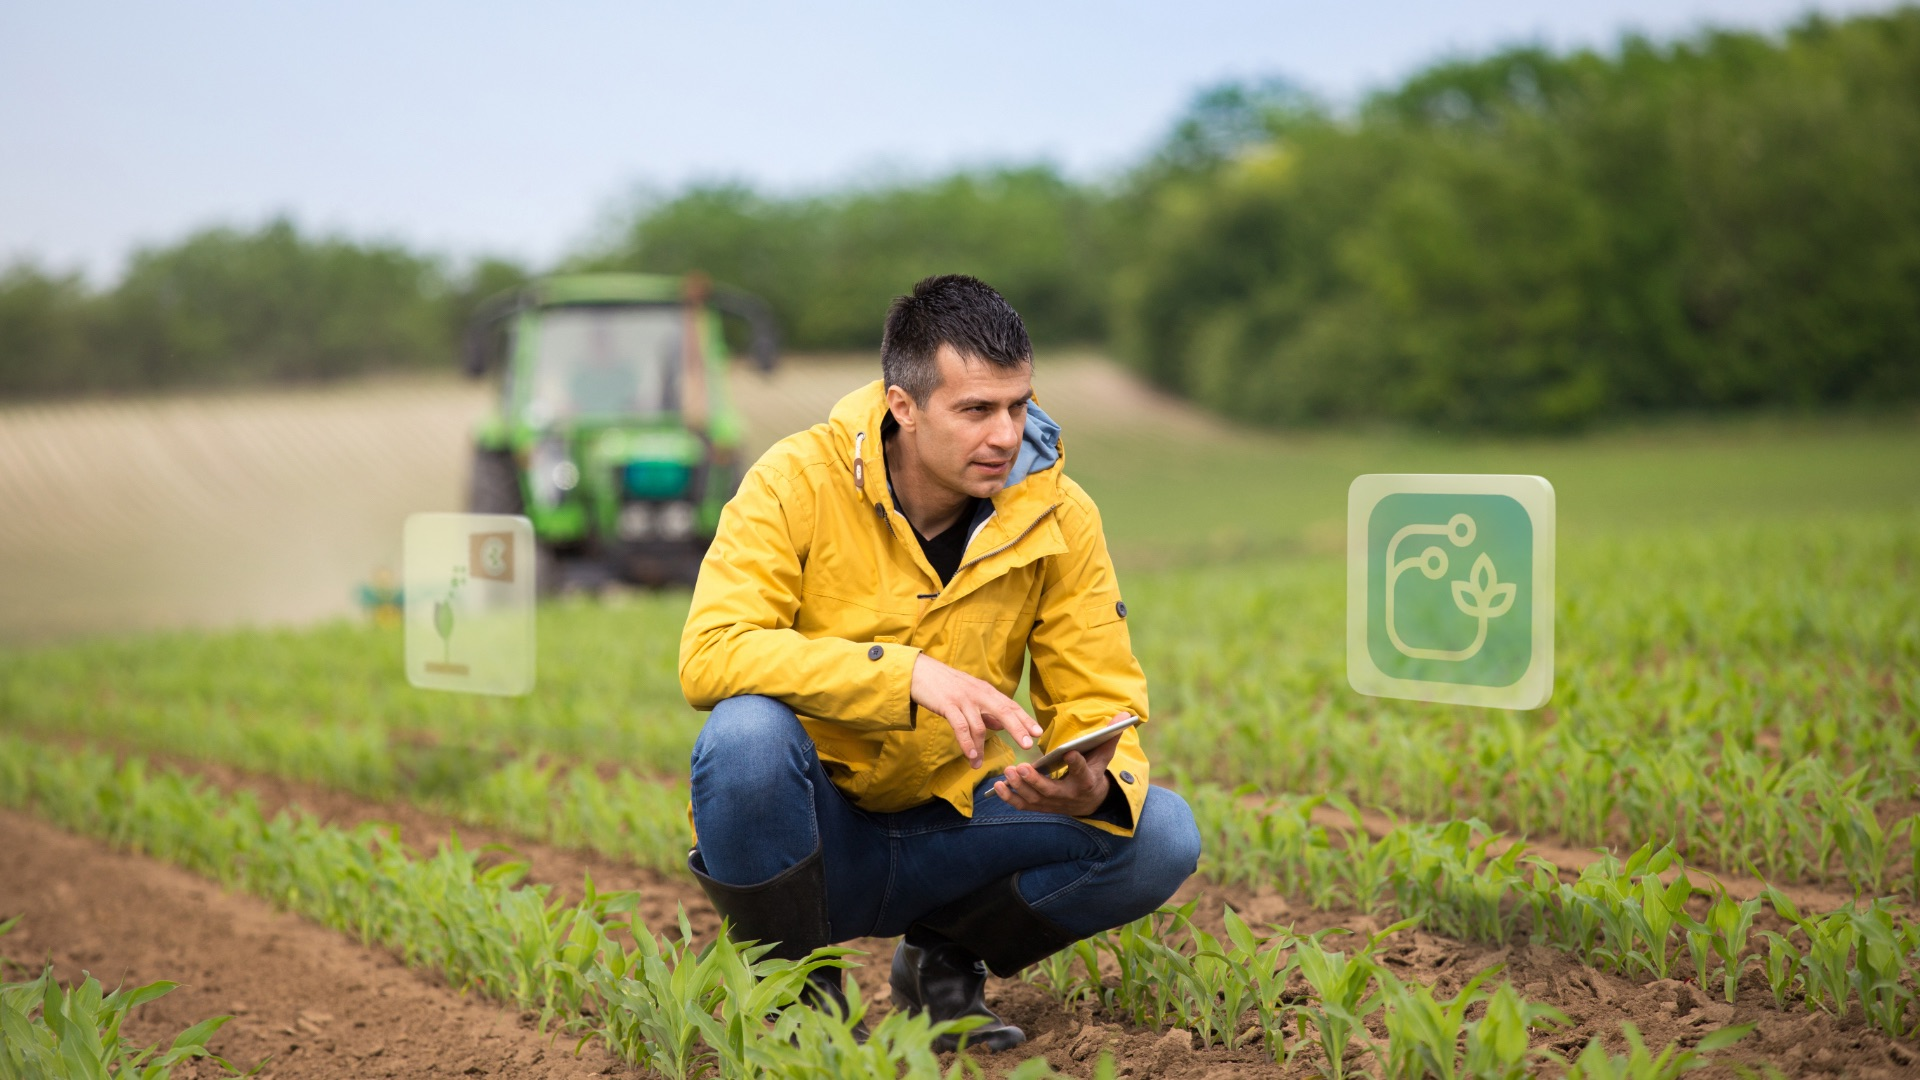 Farmers benefit from the NEVONEX ecosystem and can select an individual package of digital services to make their daily work easier and help to increase yields.